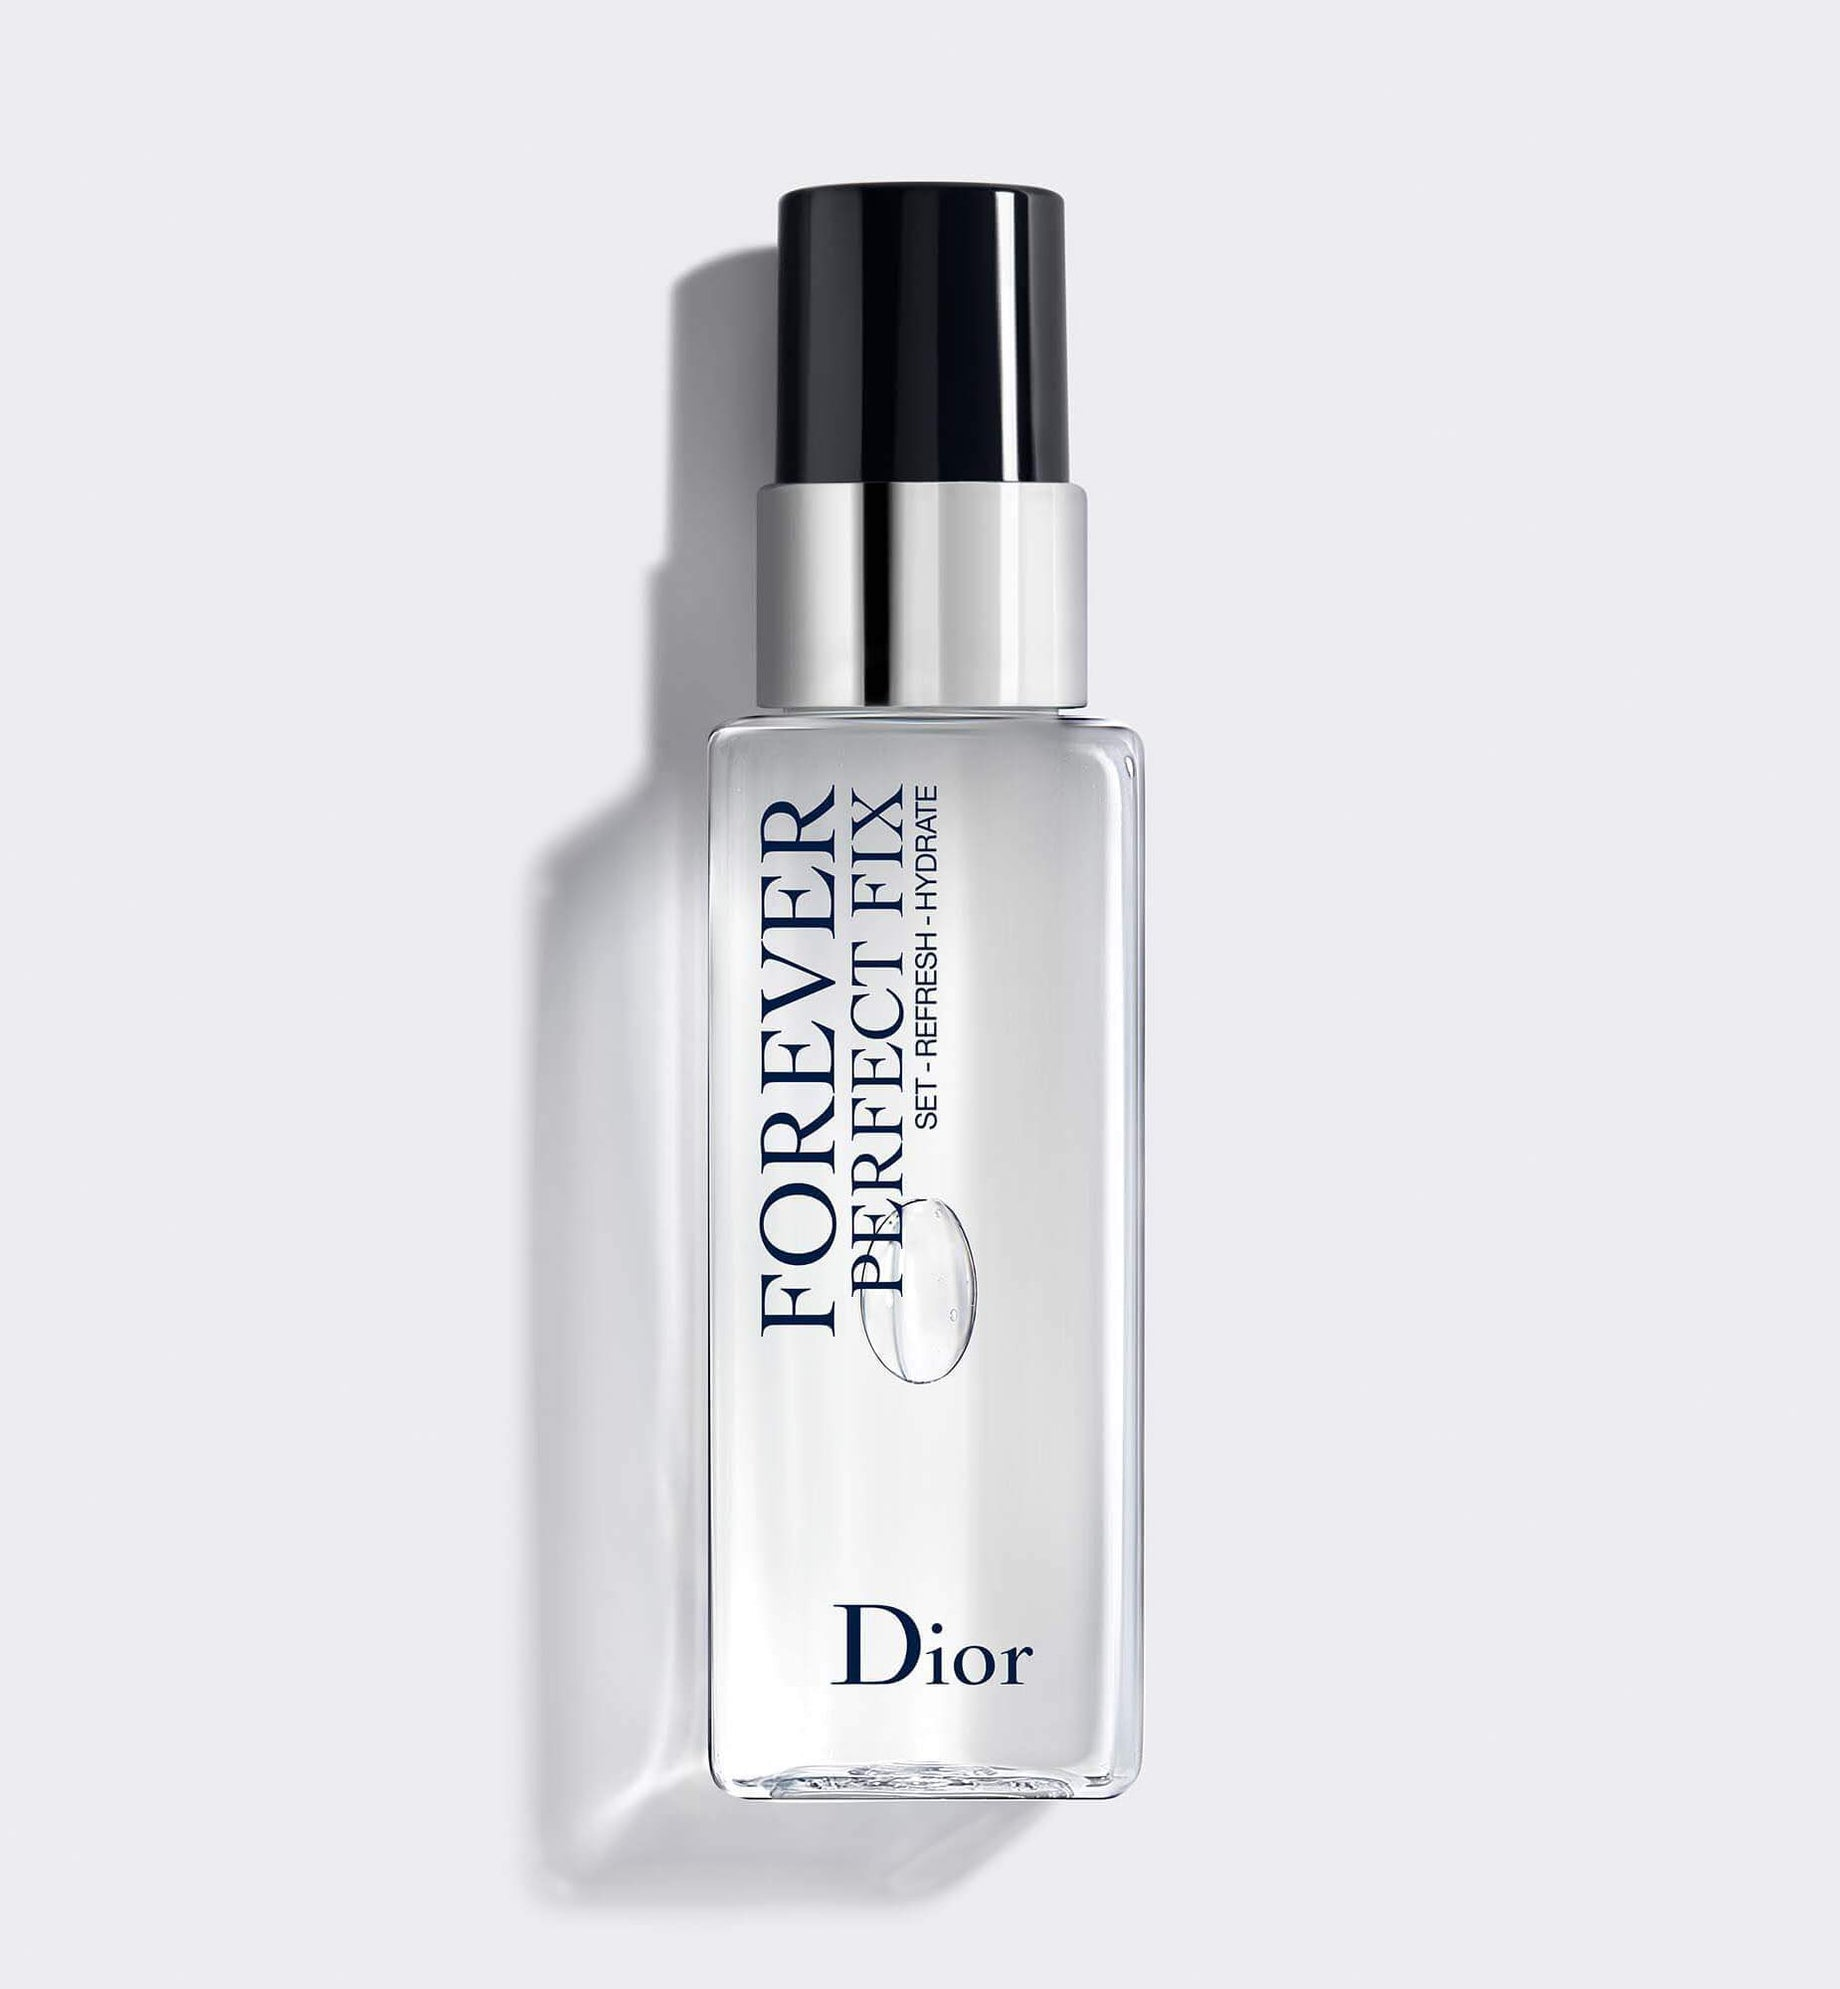 Dior Forever Perfect Fix - Face Mist - Makeup Setting Spray